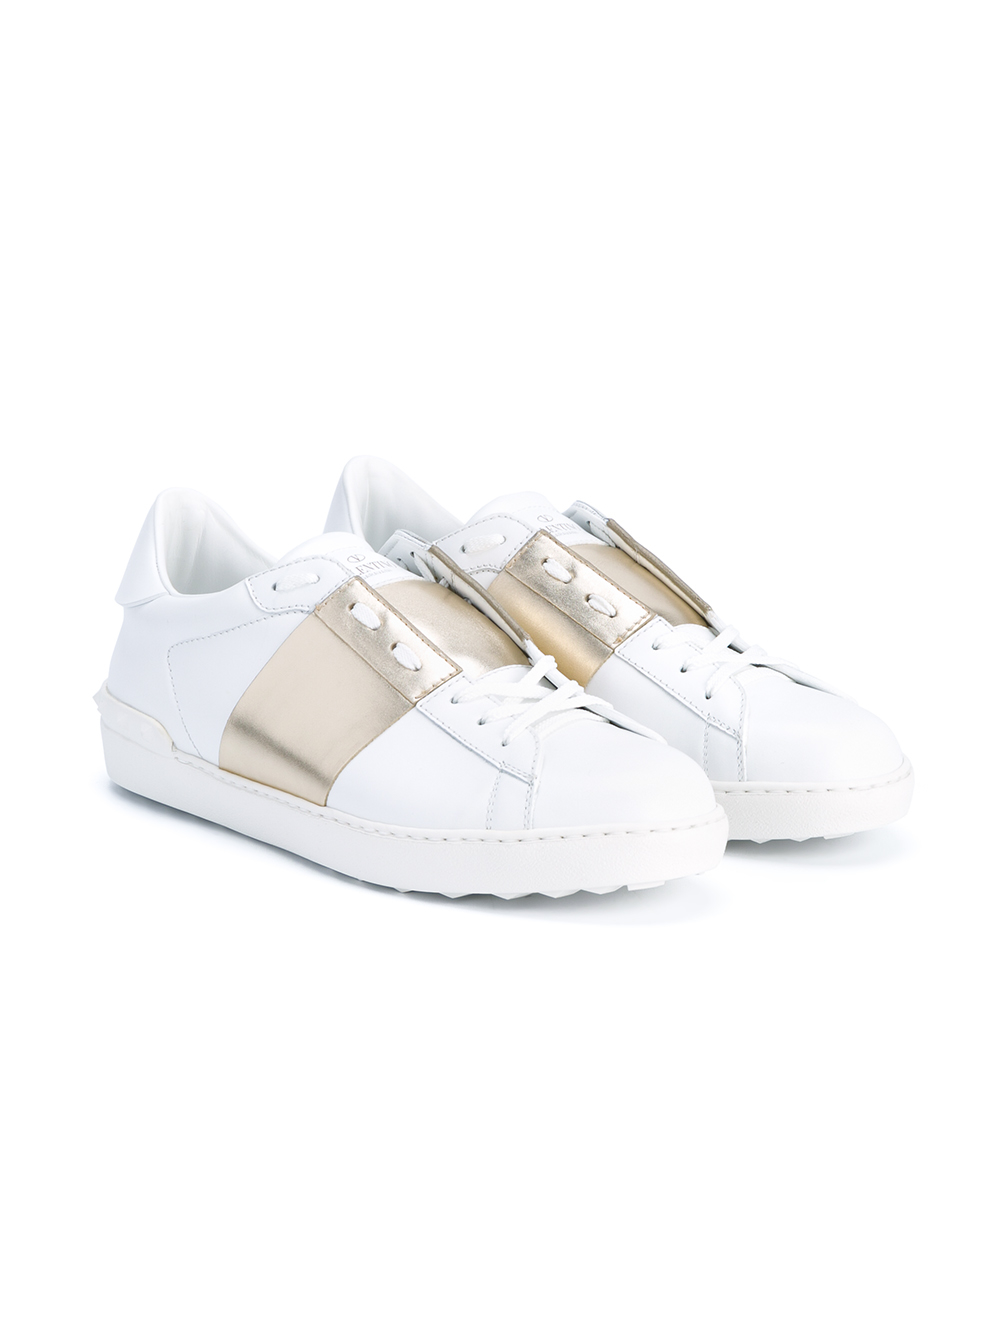 be7cfc023d99 Lyst - Valentino Rockstud Leather Sneakers in White